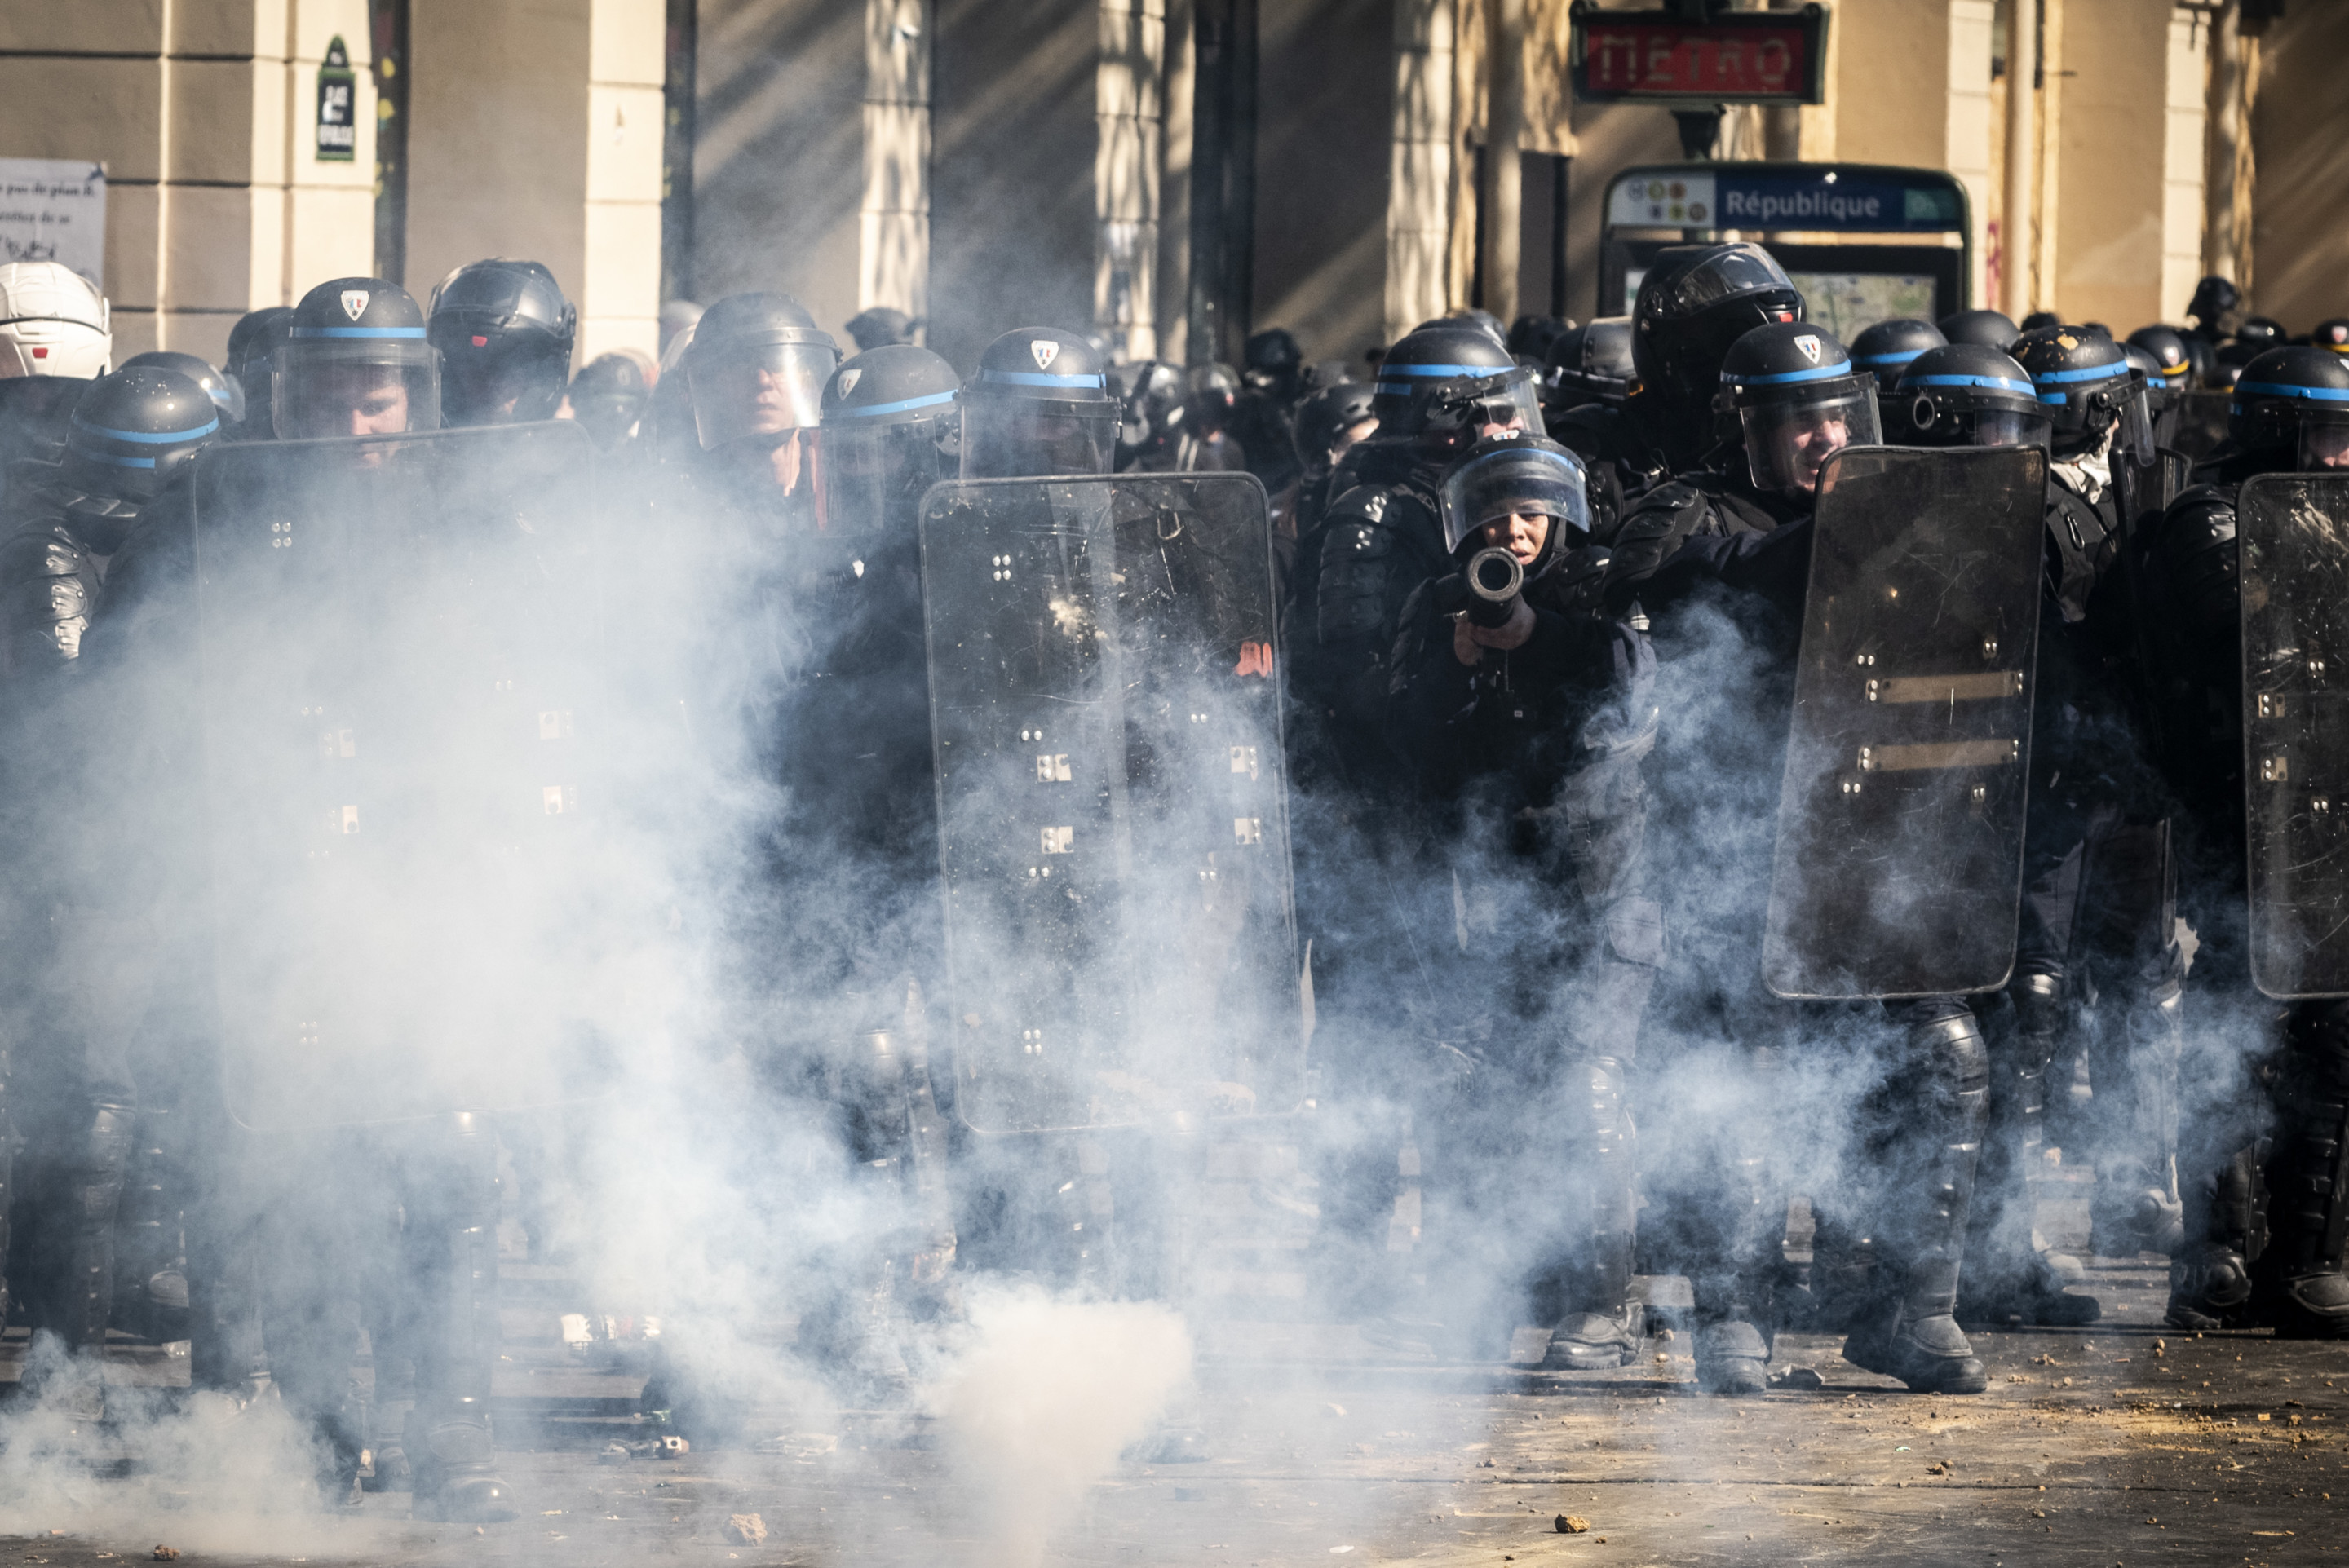 Act 23 of the Yellow Vests in Paris